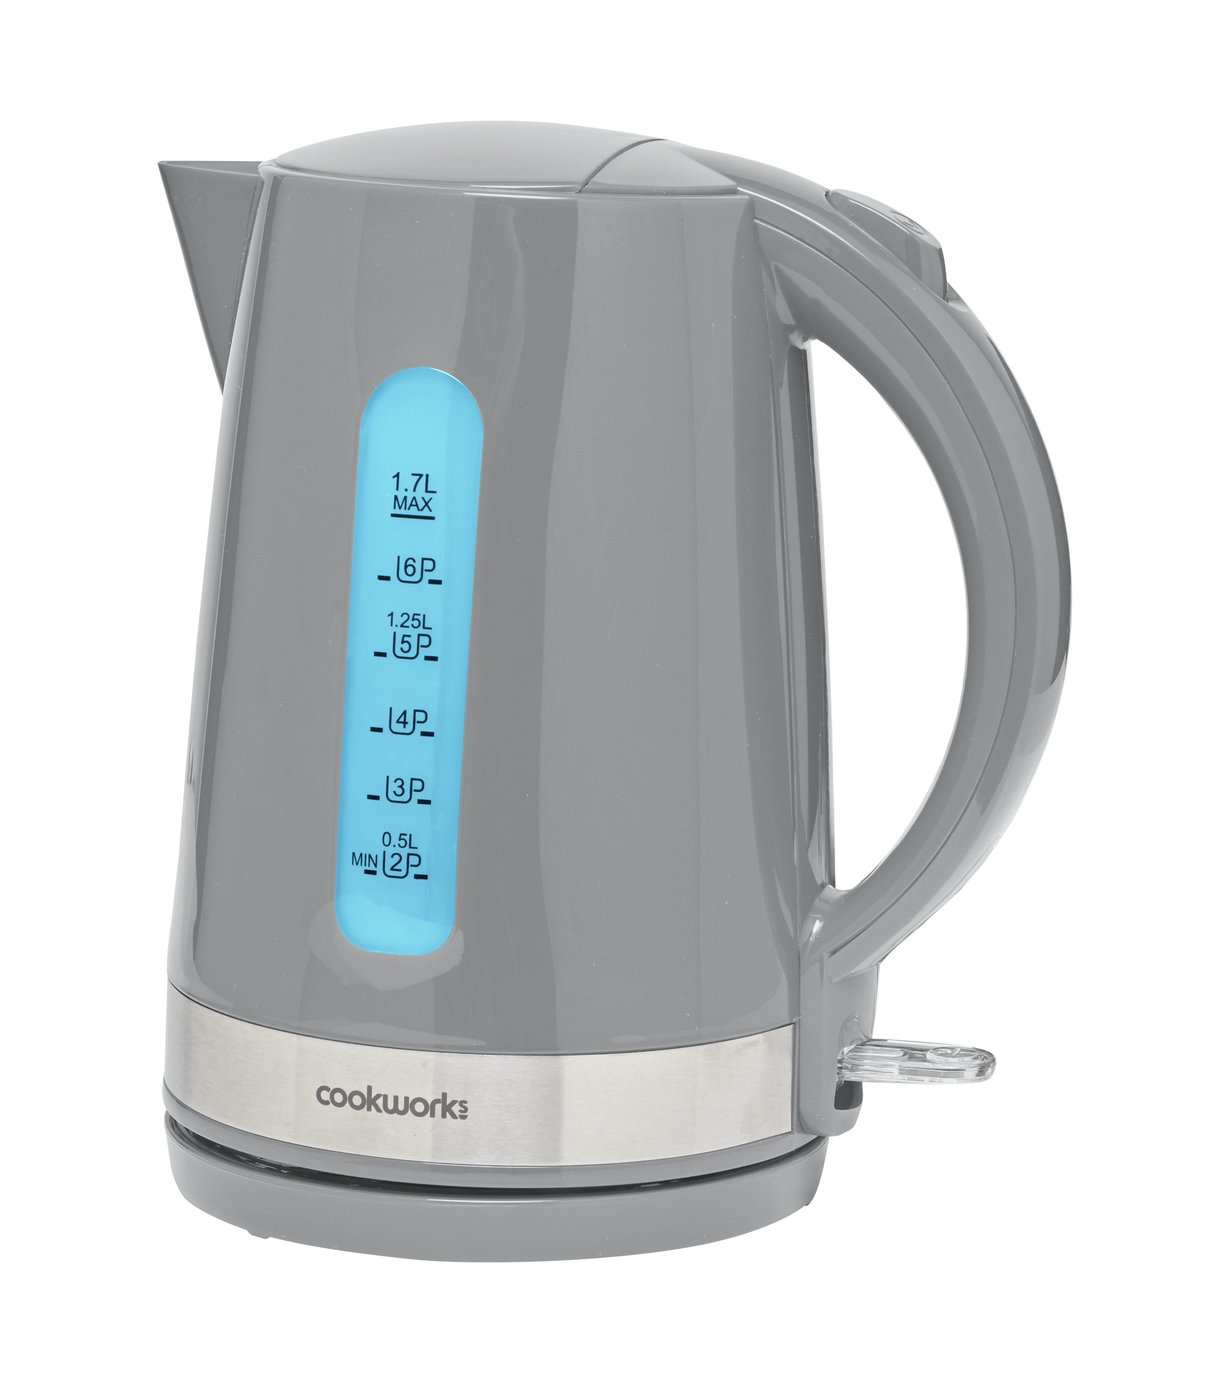 Cookworks Plastic Illuminated Kettle - Grey